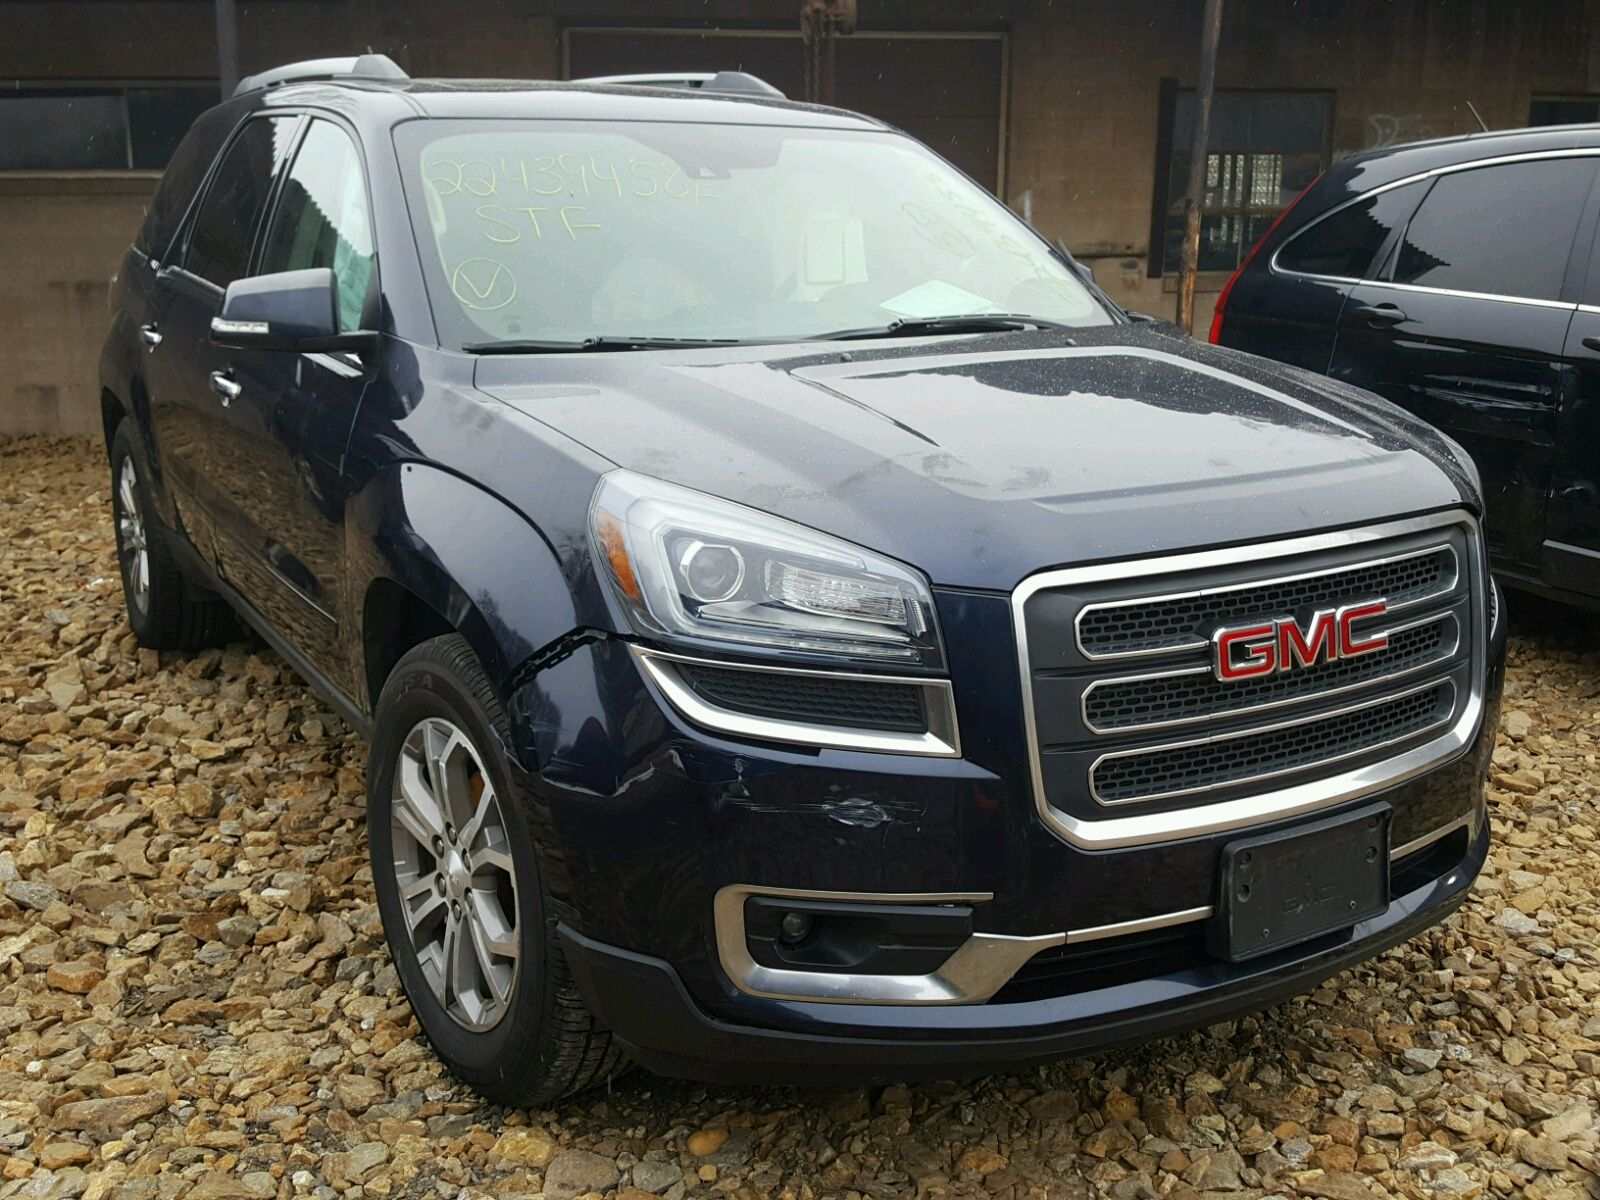 2015 #GMC #ACADIA SLT 3.6L for Sale at #Copart Auto Auction. Bid ...